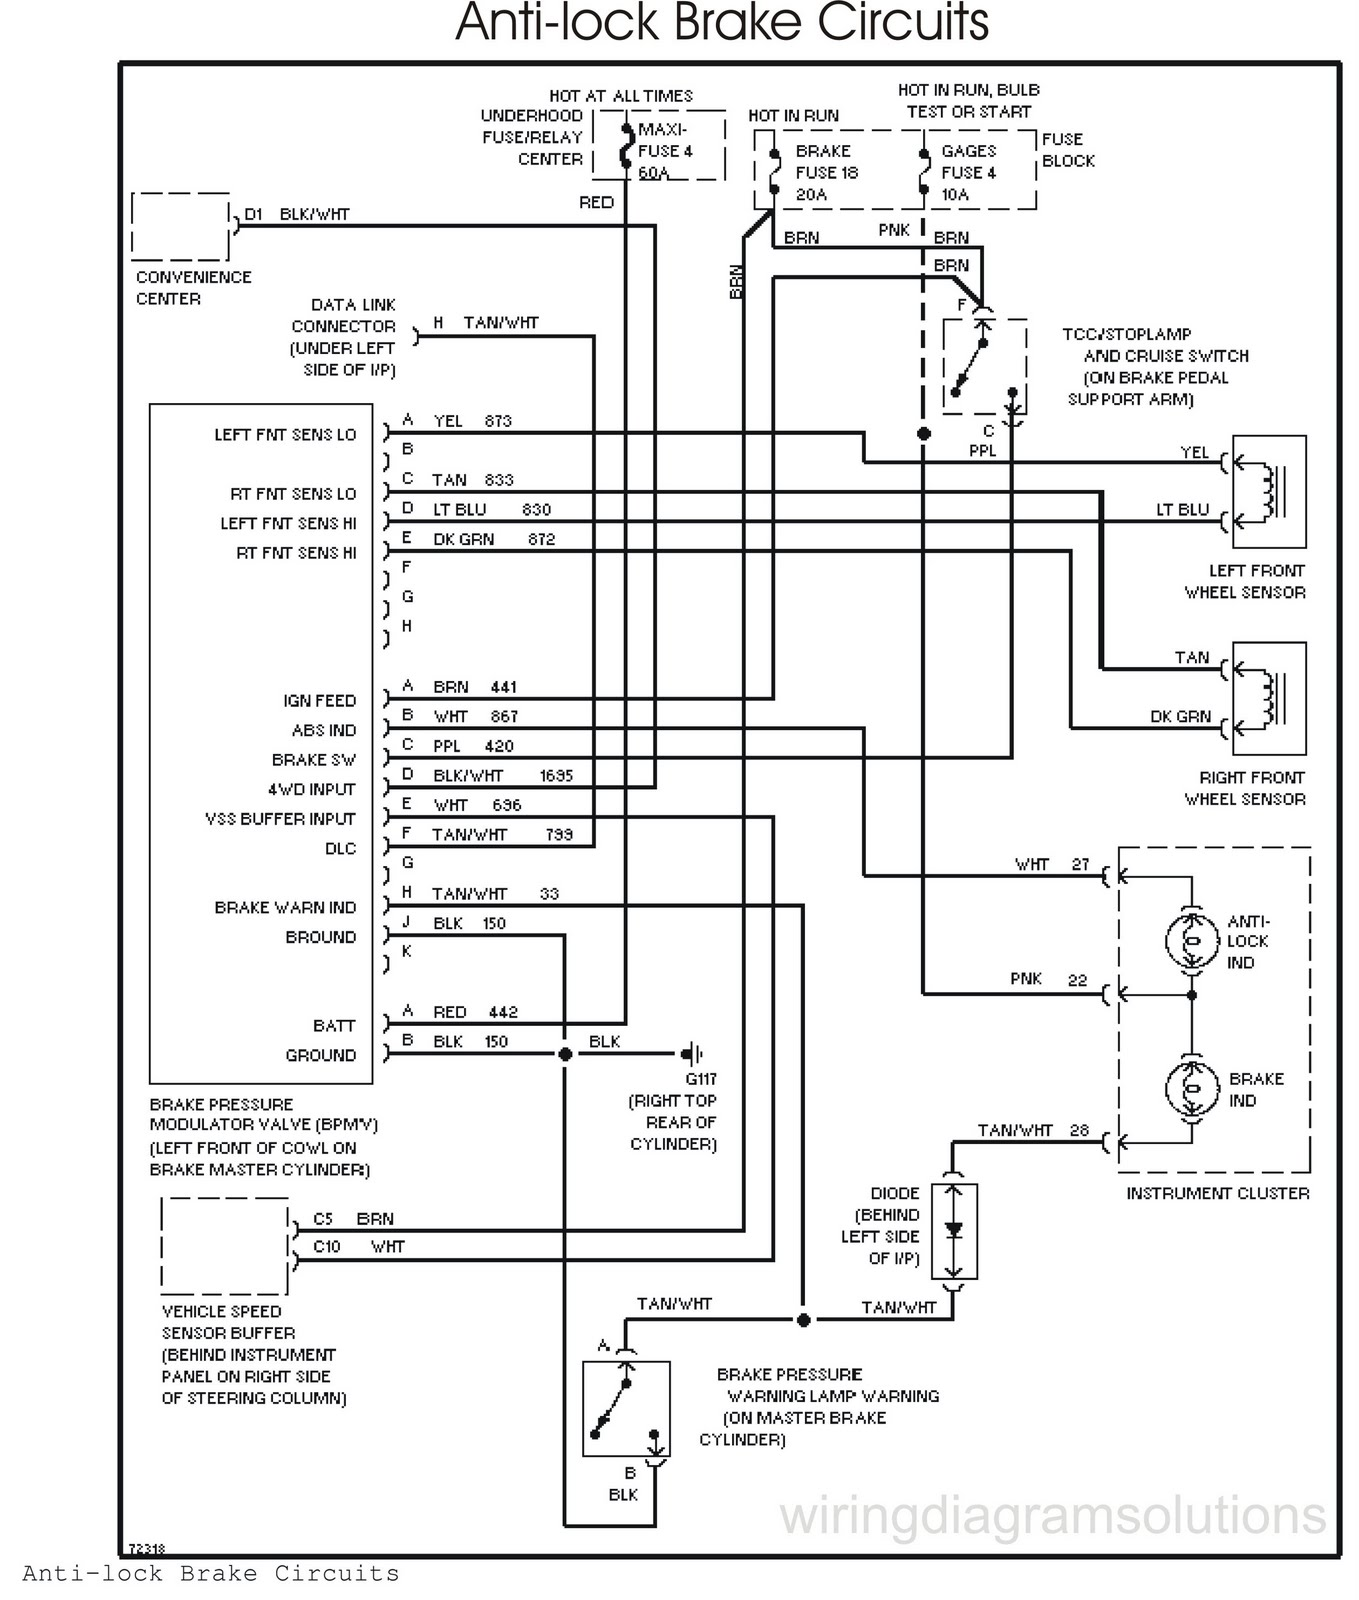 2005 Tahoe Autoride Wiring Diagram Schematic Chevy Power Mirror Lt Diagrams Accord